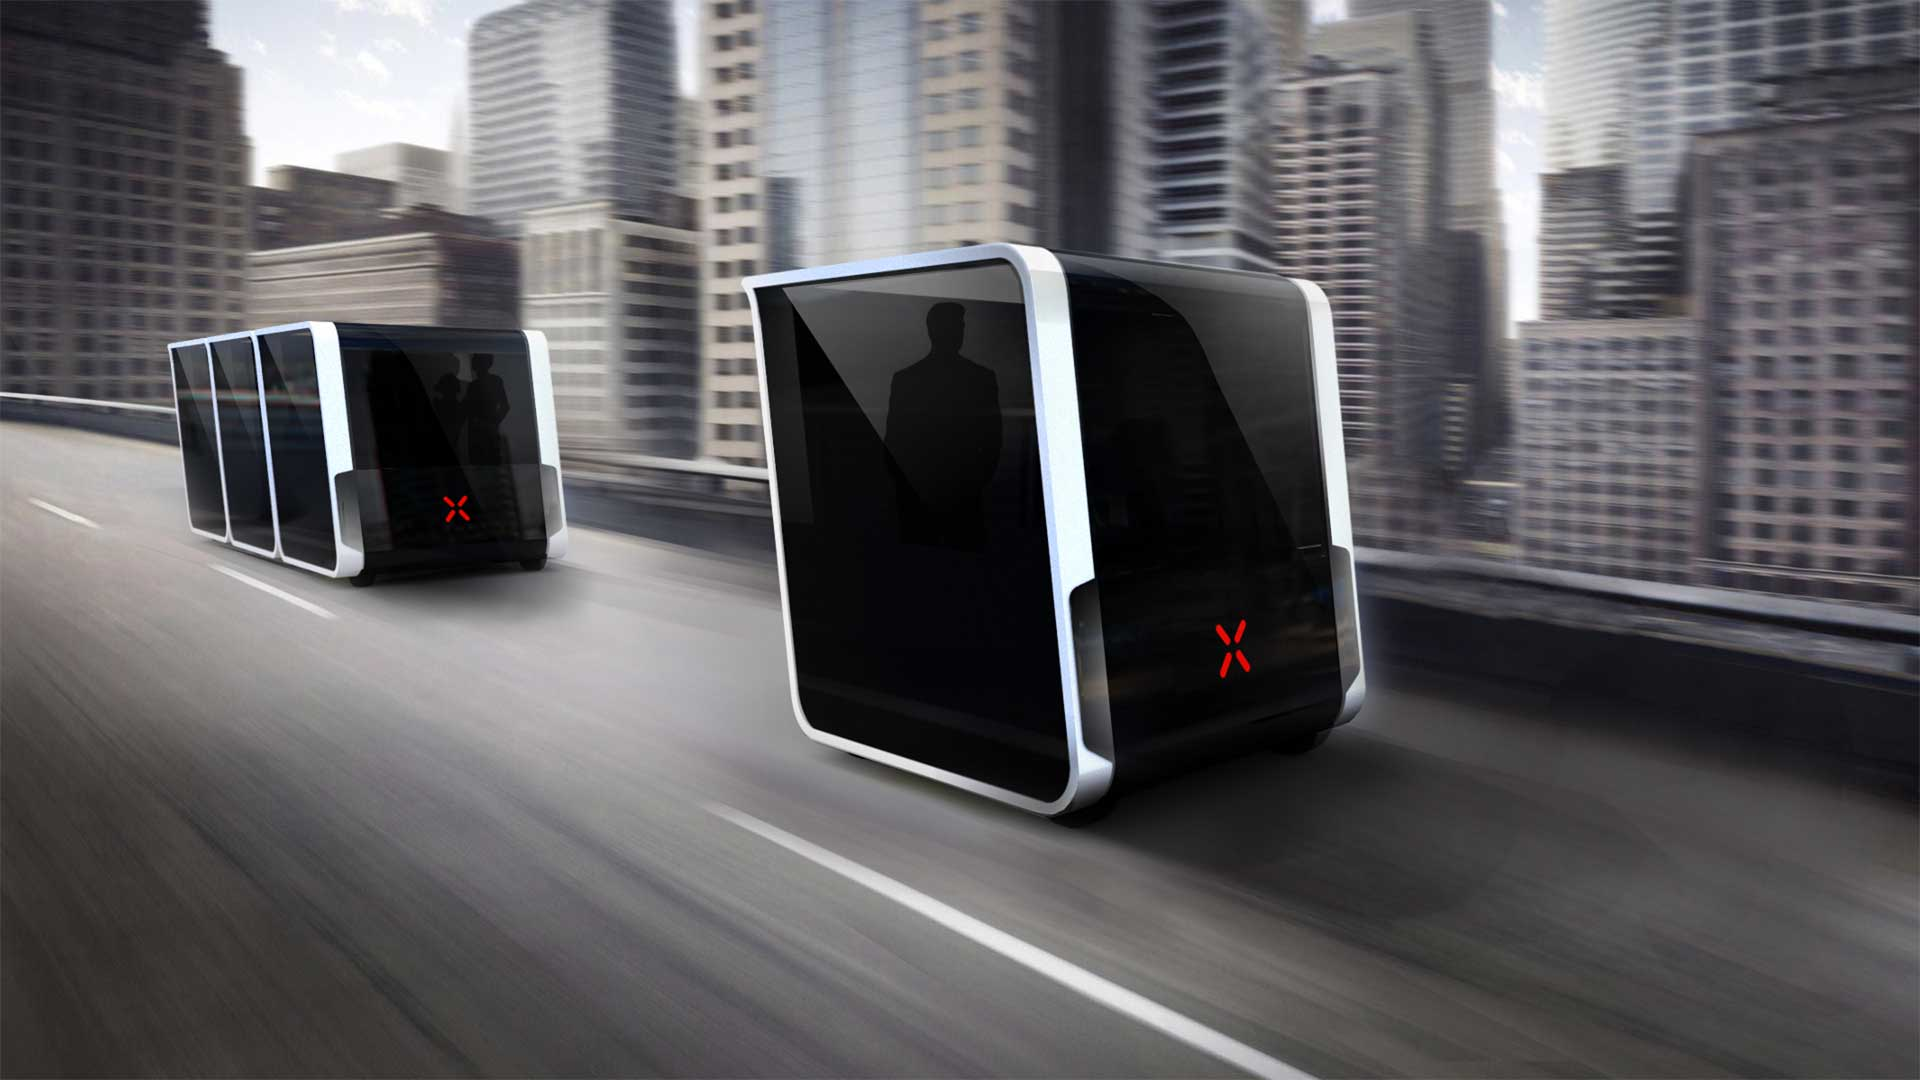 NEXT future transportation smart mobility and transportation for mega cities